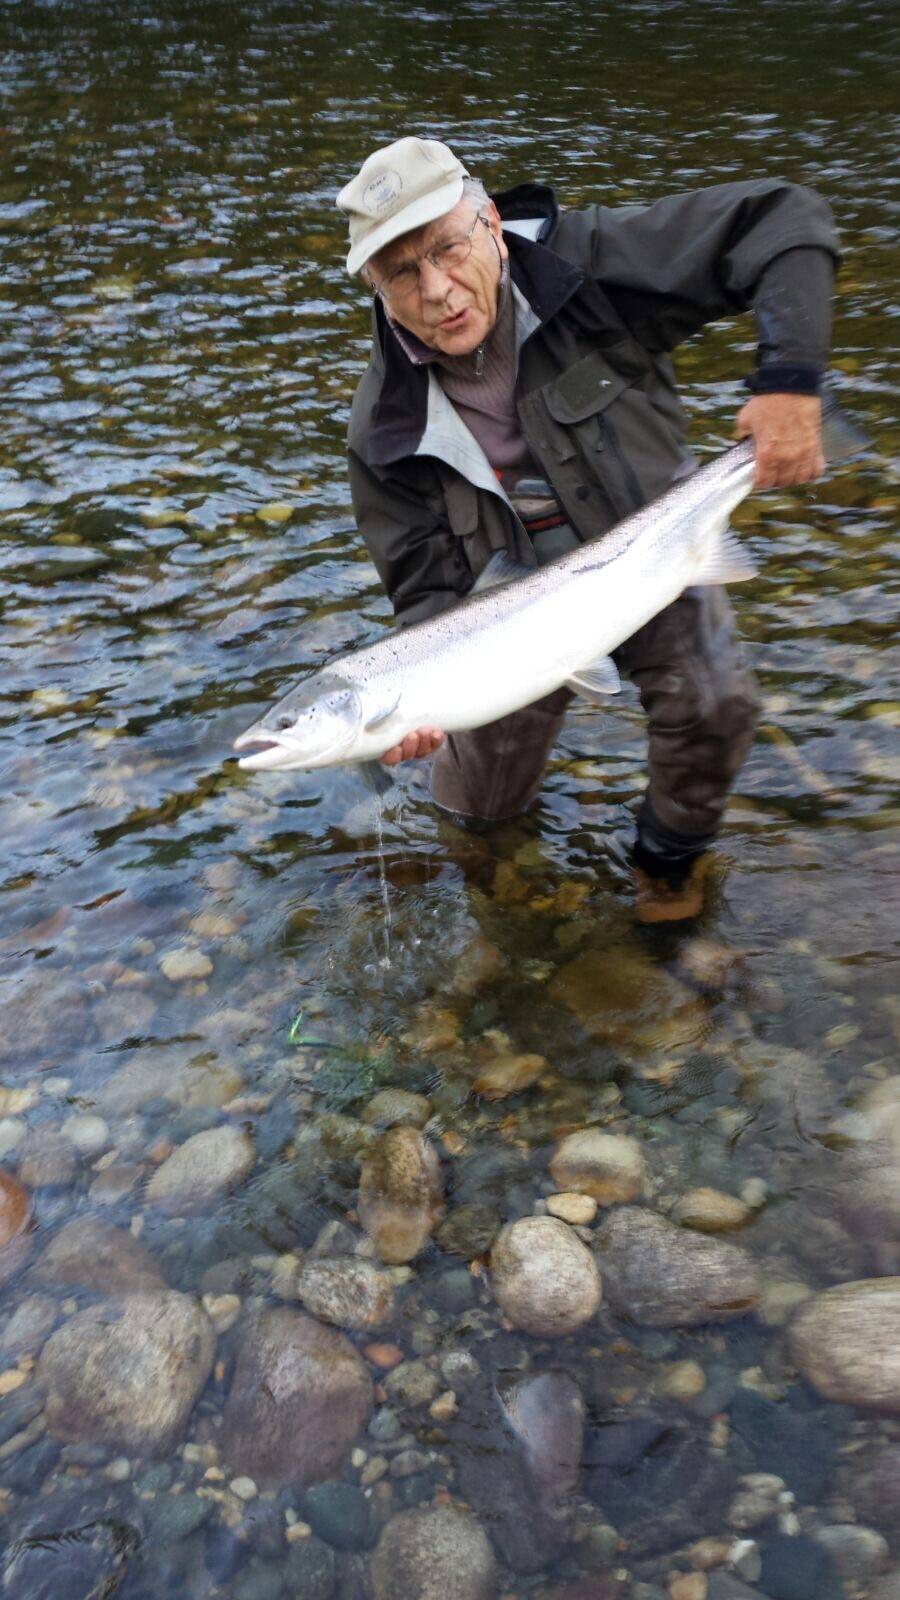 Franz with his nice salmon of about 8kg